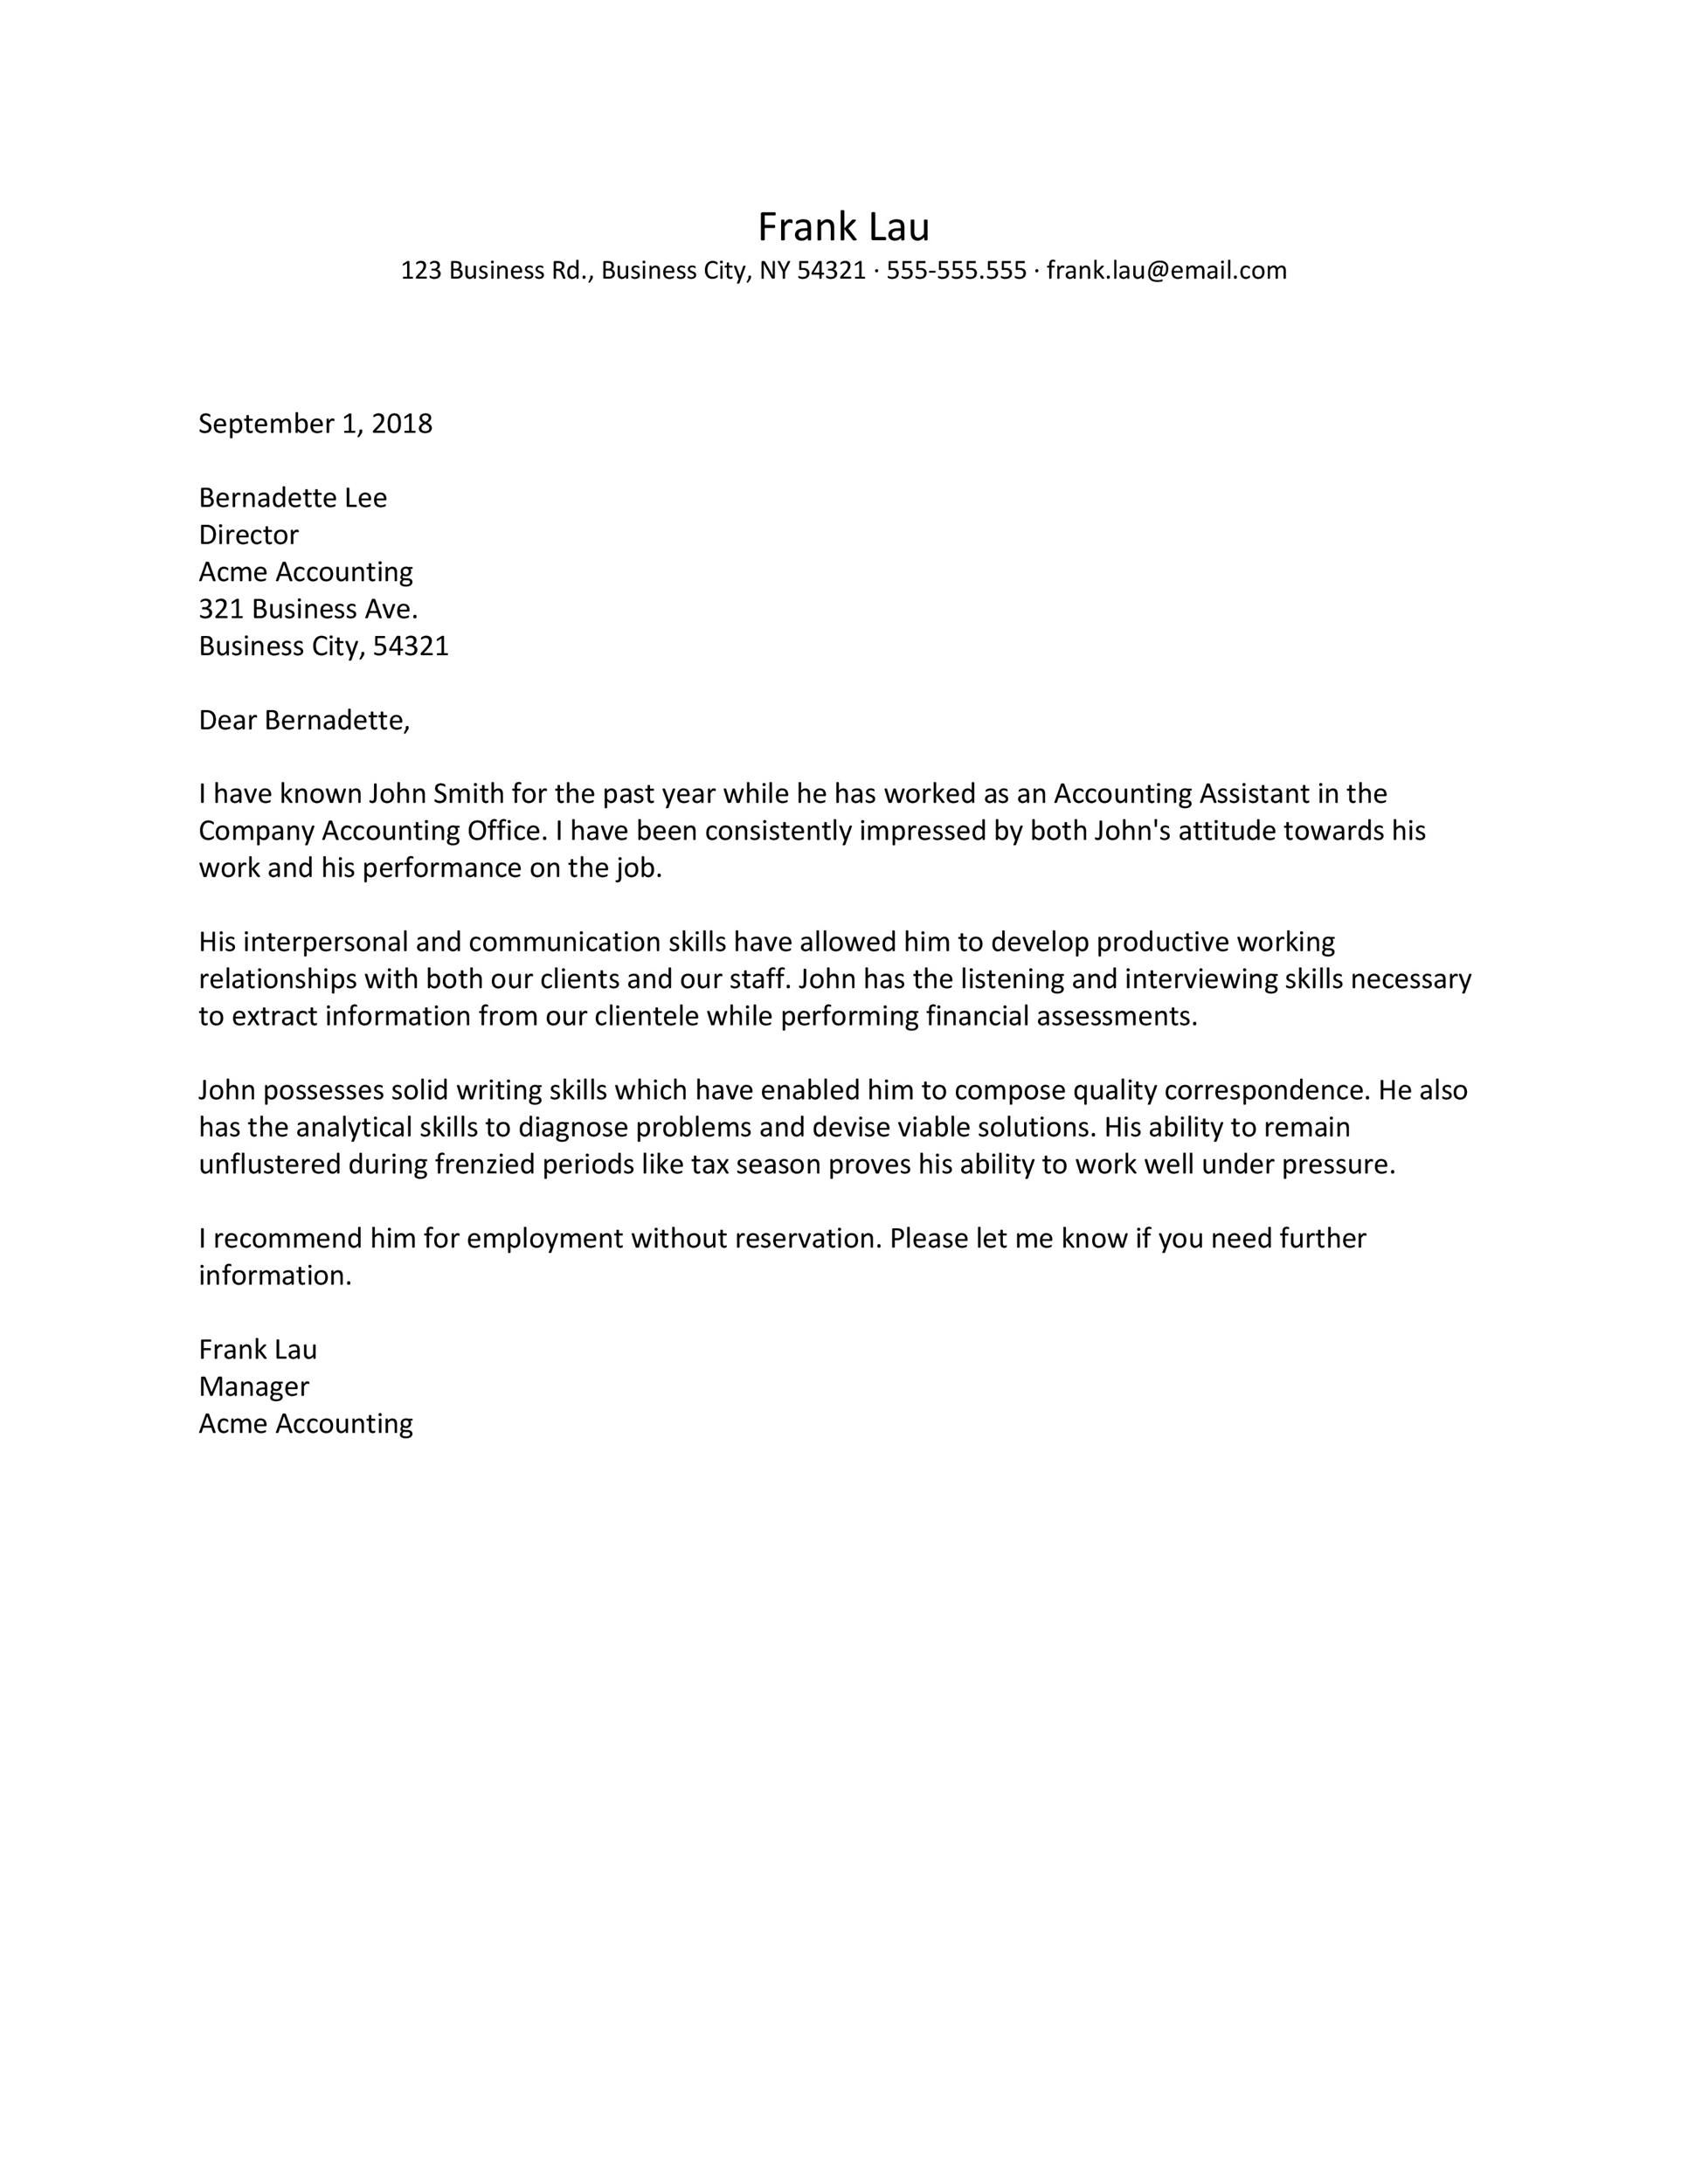 003 Astounding Free Reference Letter Template From Employer Picture  For Employment WordFull